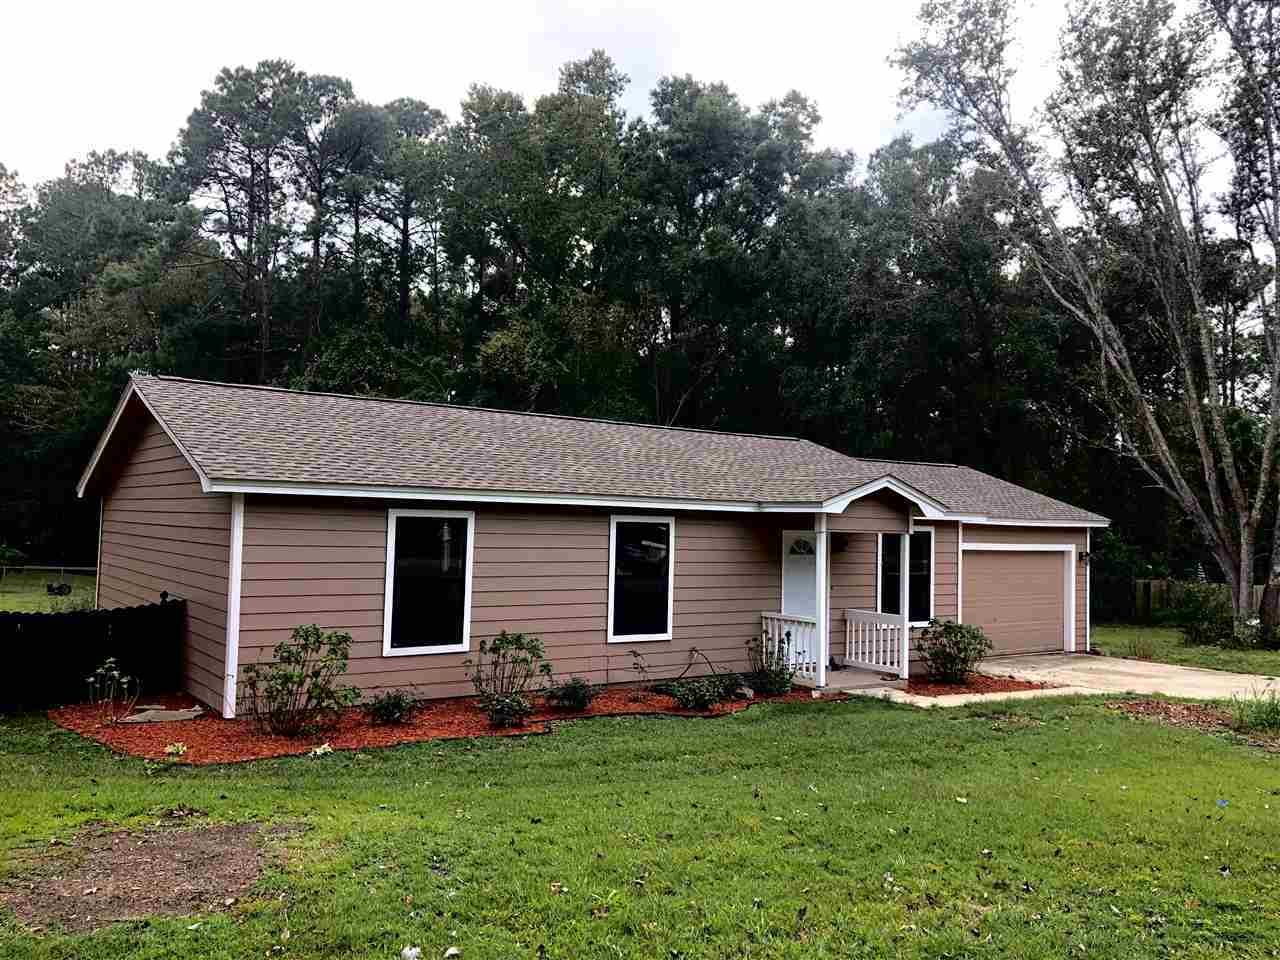 $185,000 - 3Br/2Ba -  for Sale in Frontier Estates, Tallahassee